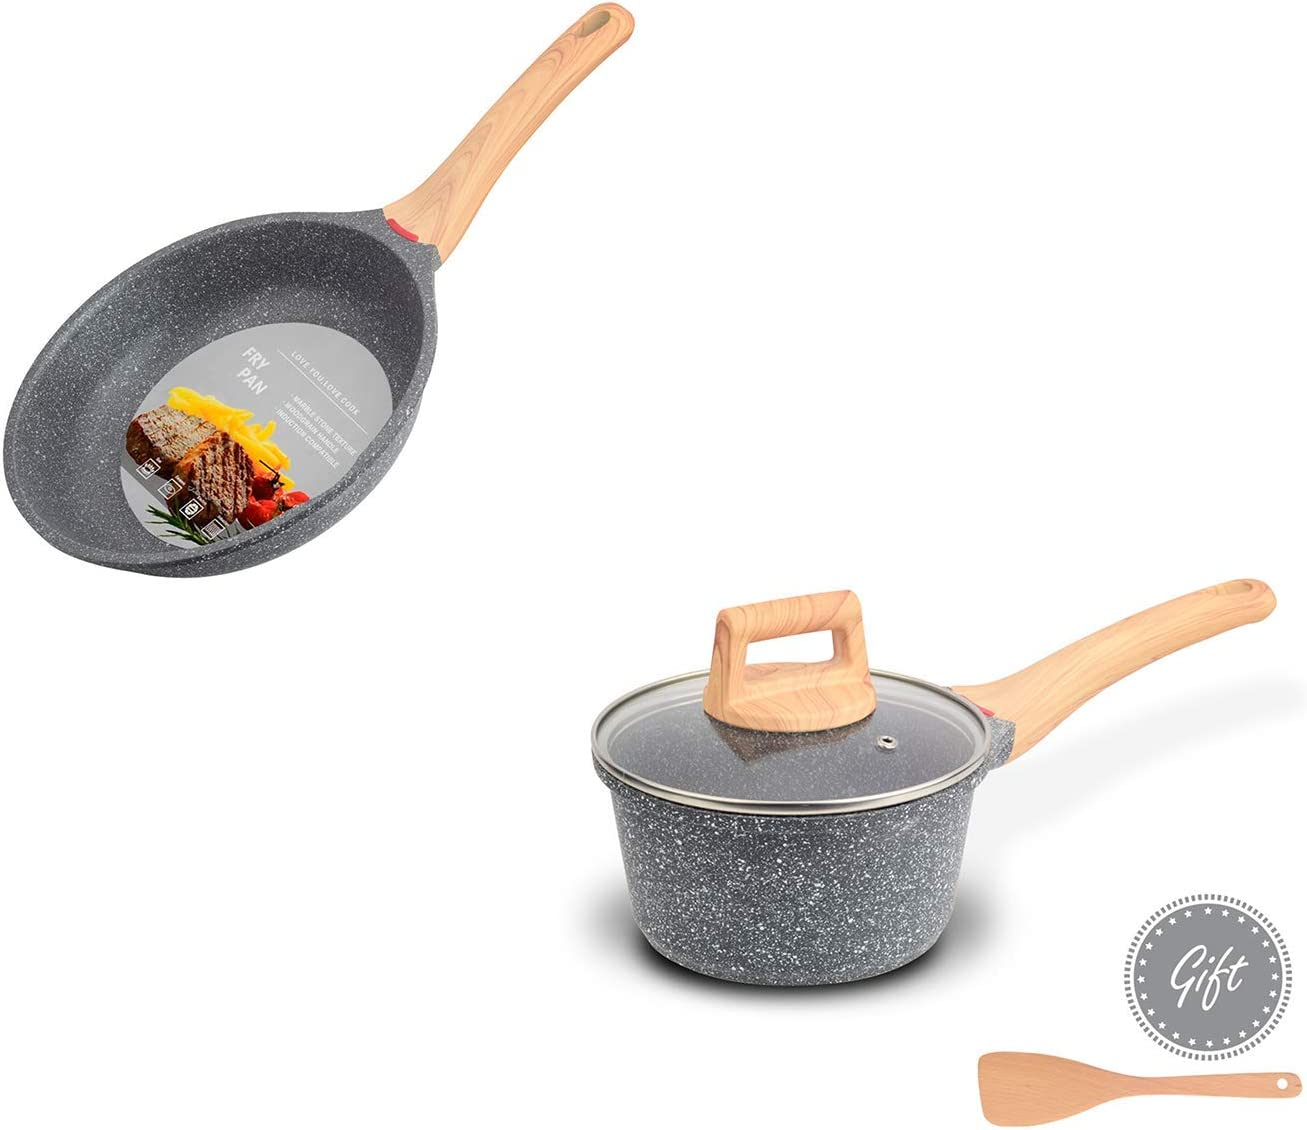 Hansubute 8.5inch frying pan 1.5QT Deluxe sauce set and gift